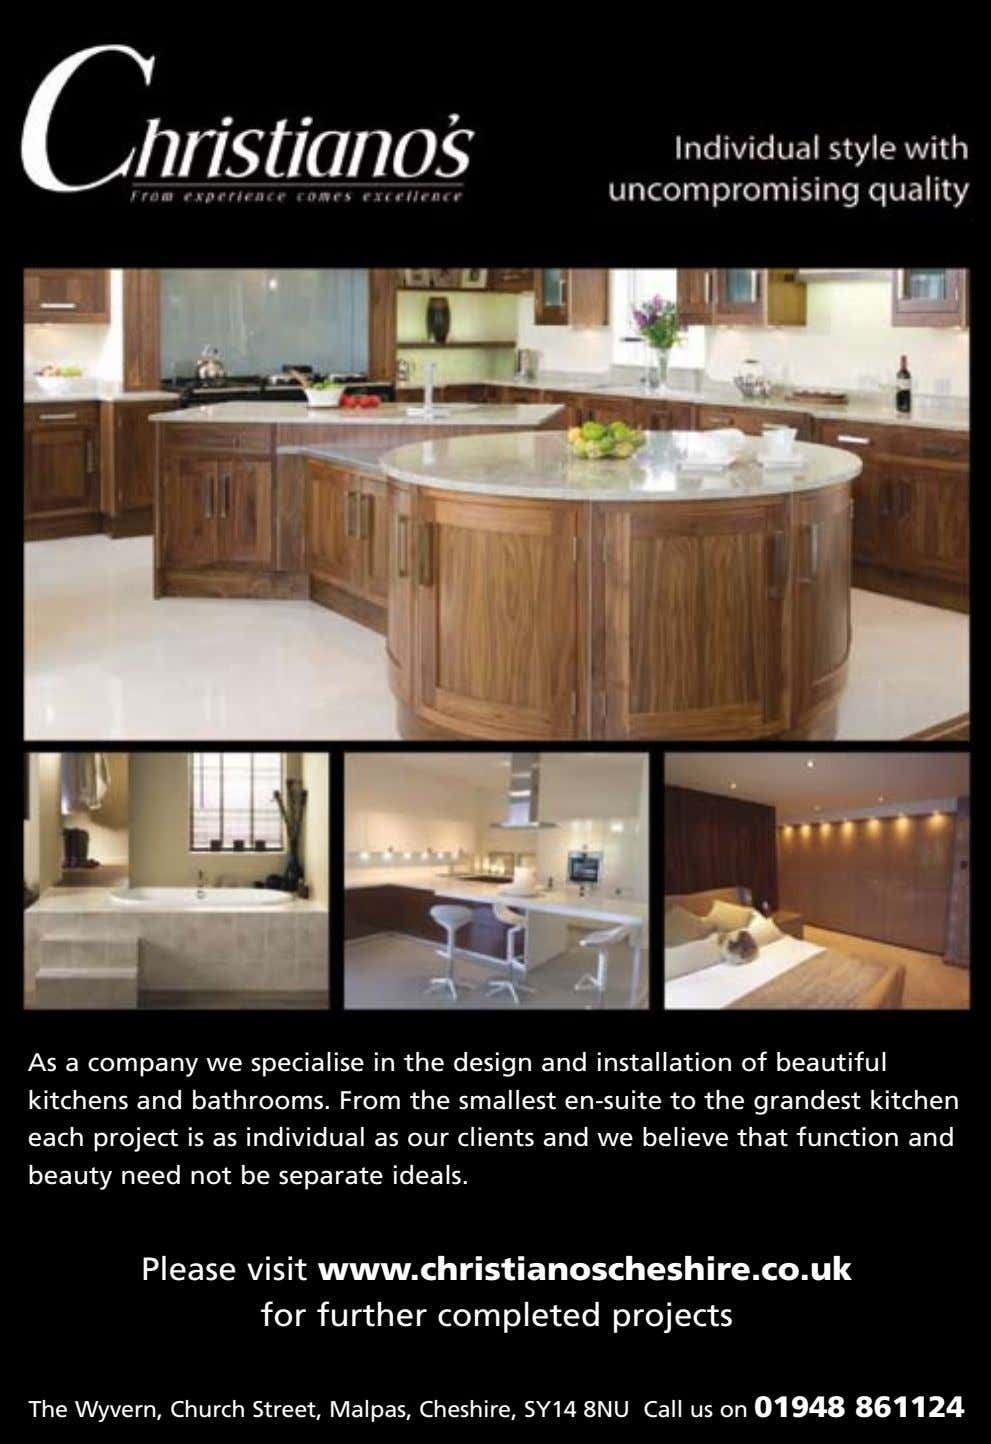 As a company we specialise in the design and installation of beautiful kitchens and bathrooms.